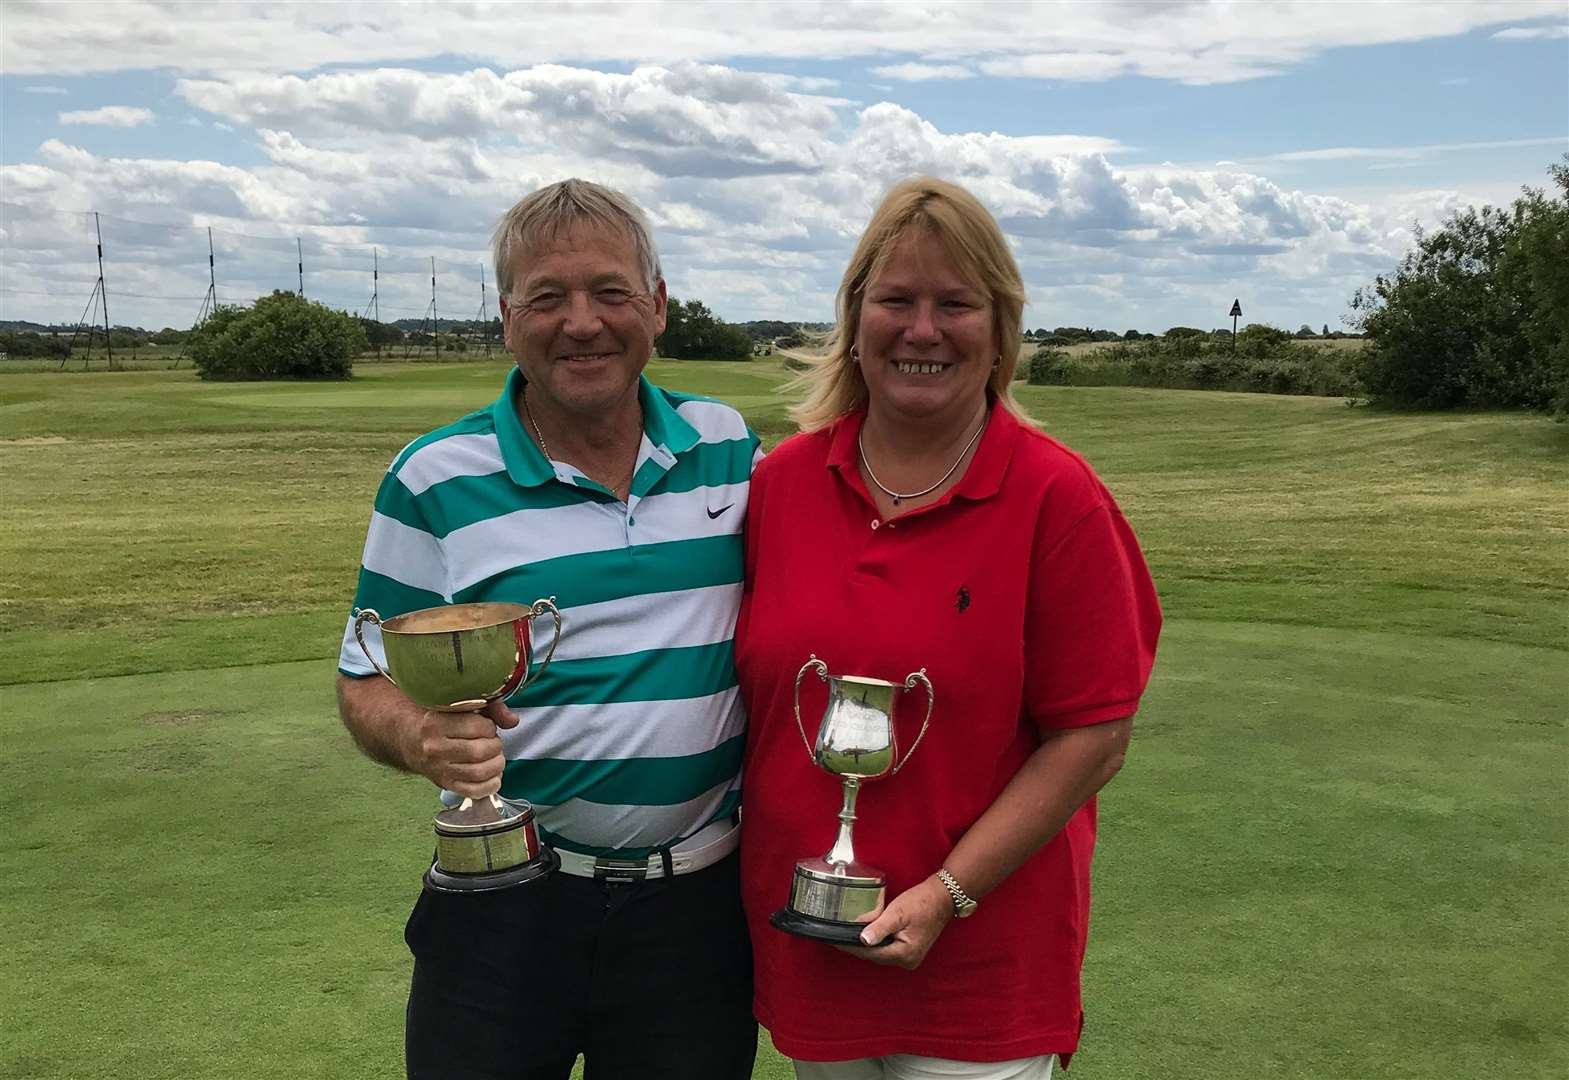 Good scoring at annual Searles Golf Club championships